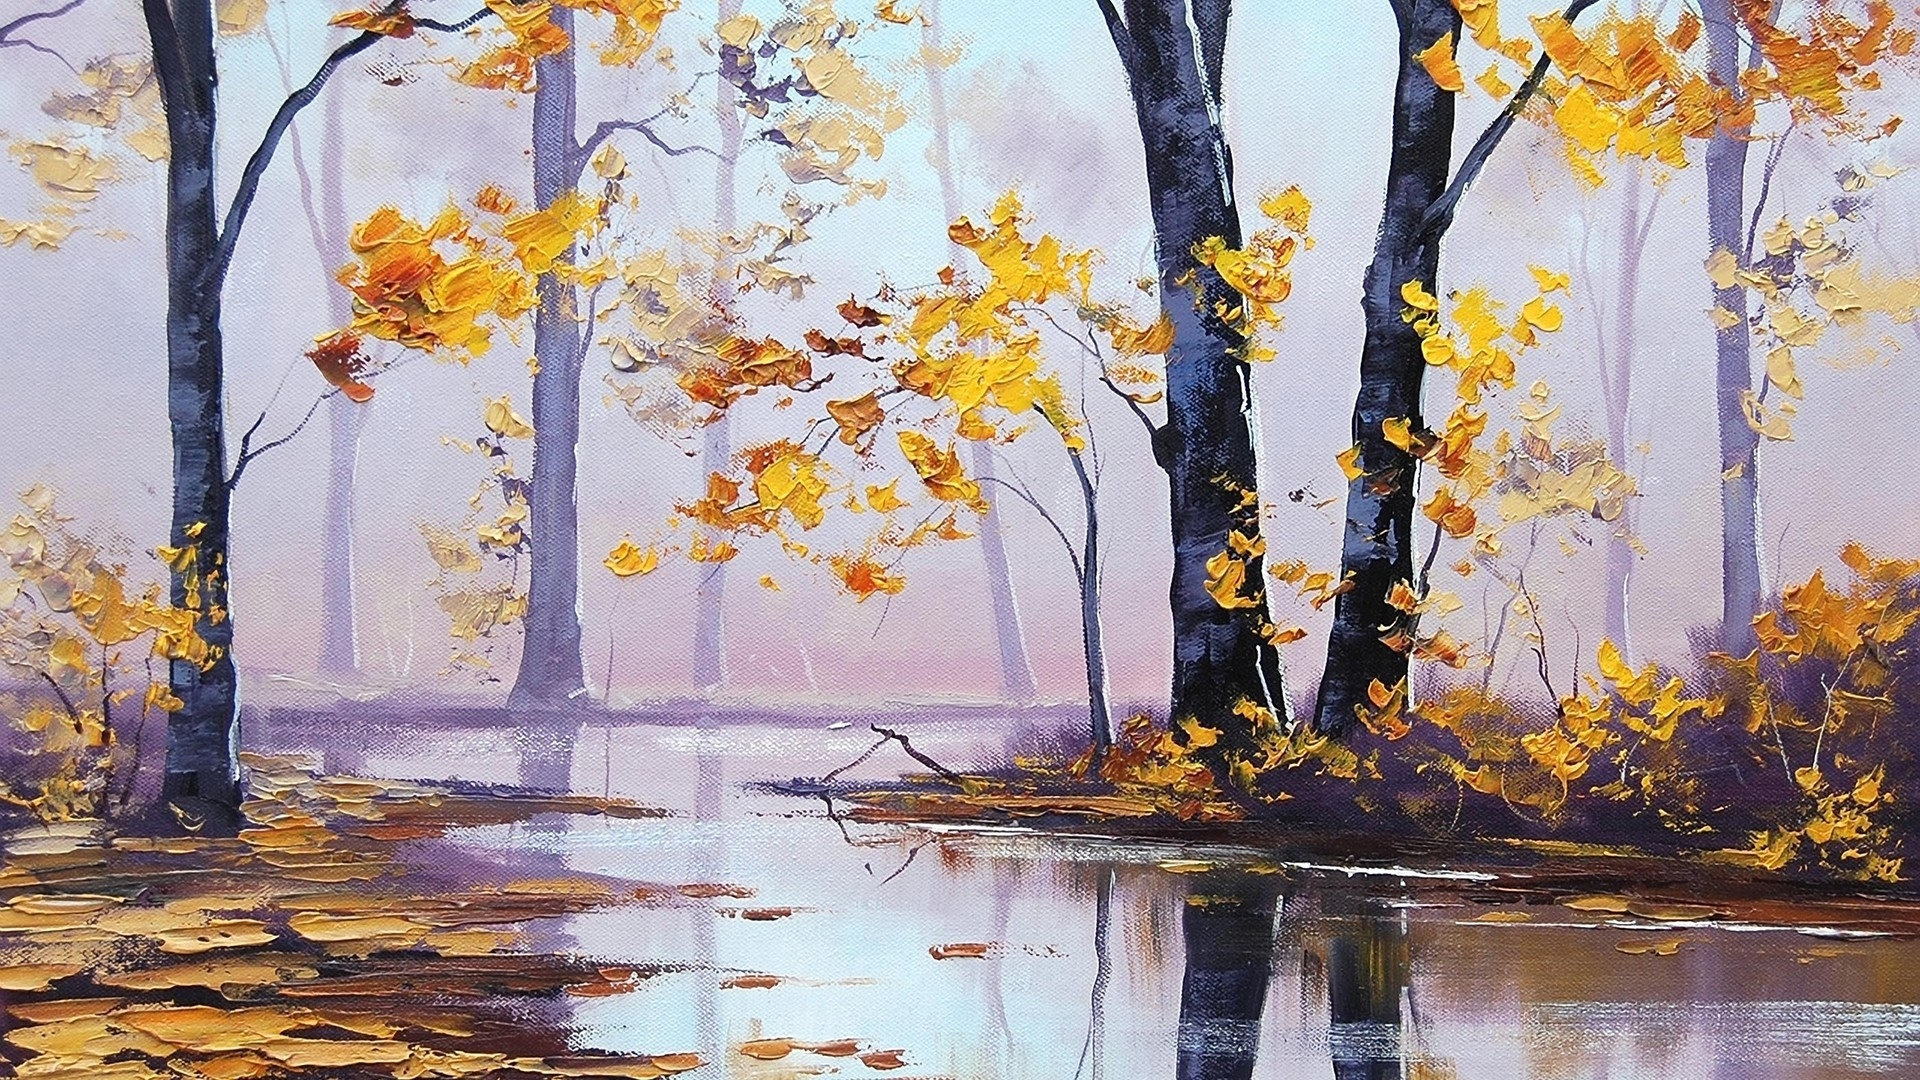 1920x1080 Autumn Scenery Oil Painting desktop PC and Mac wallpaper